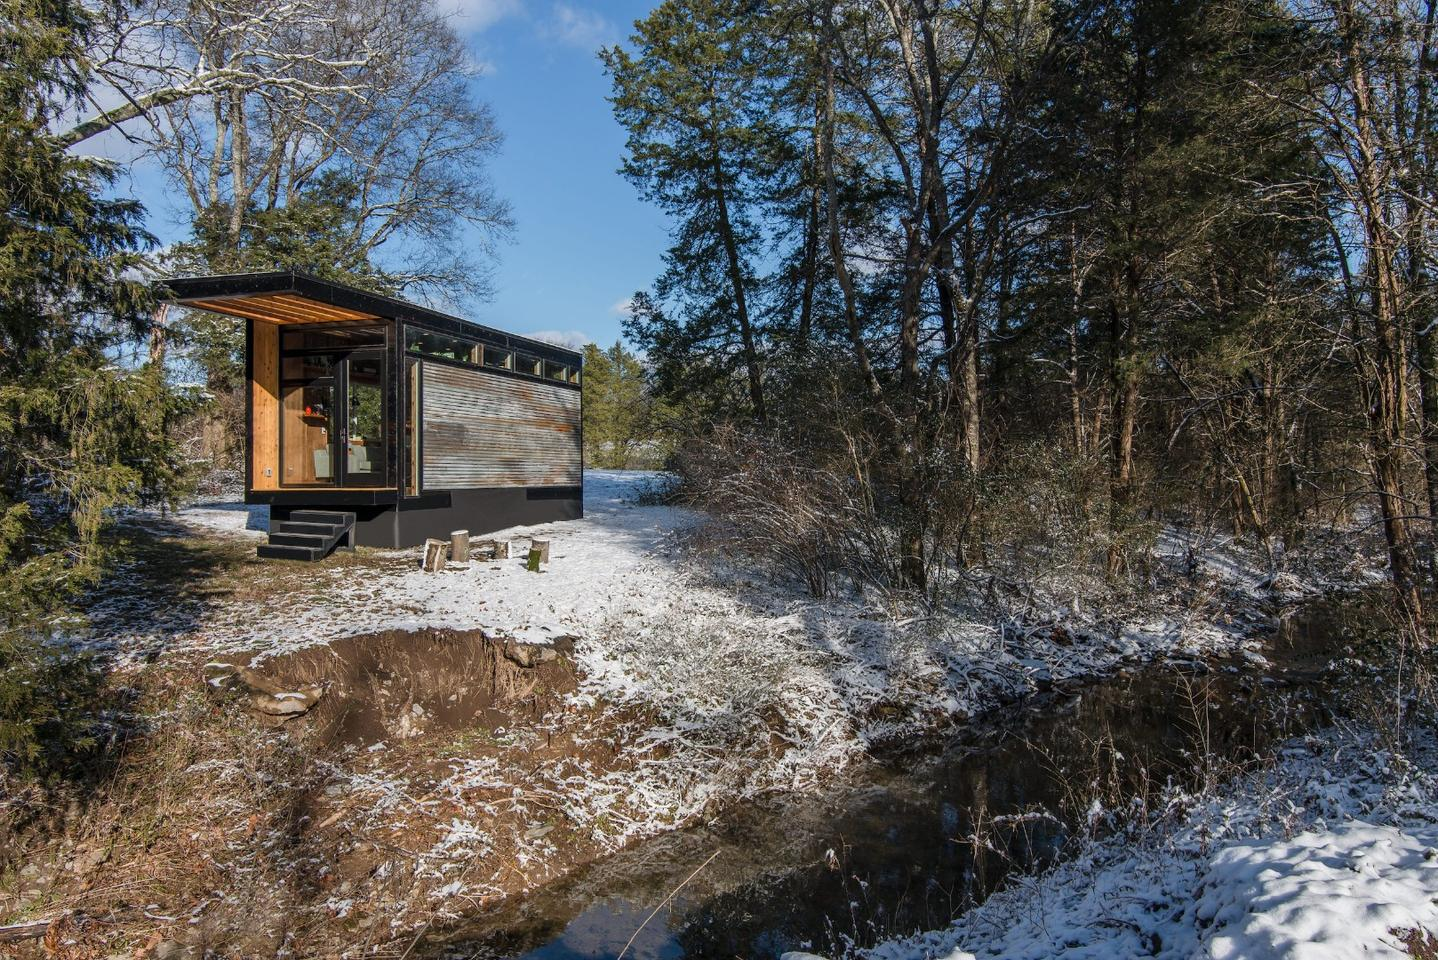 When children's author Cornelia Funke approached David Latimer to build her a new writing studio and guesthouse, it would require a little departure from his previous work as lead designer of Tennessee's New Frontier Tiny Homes